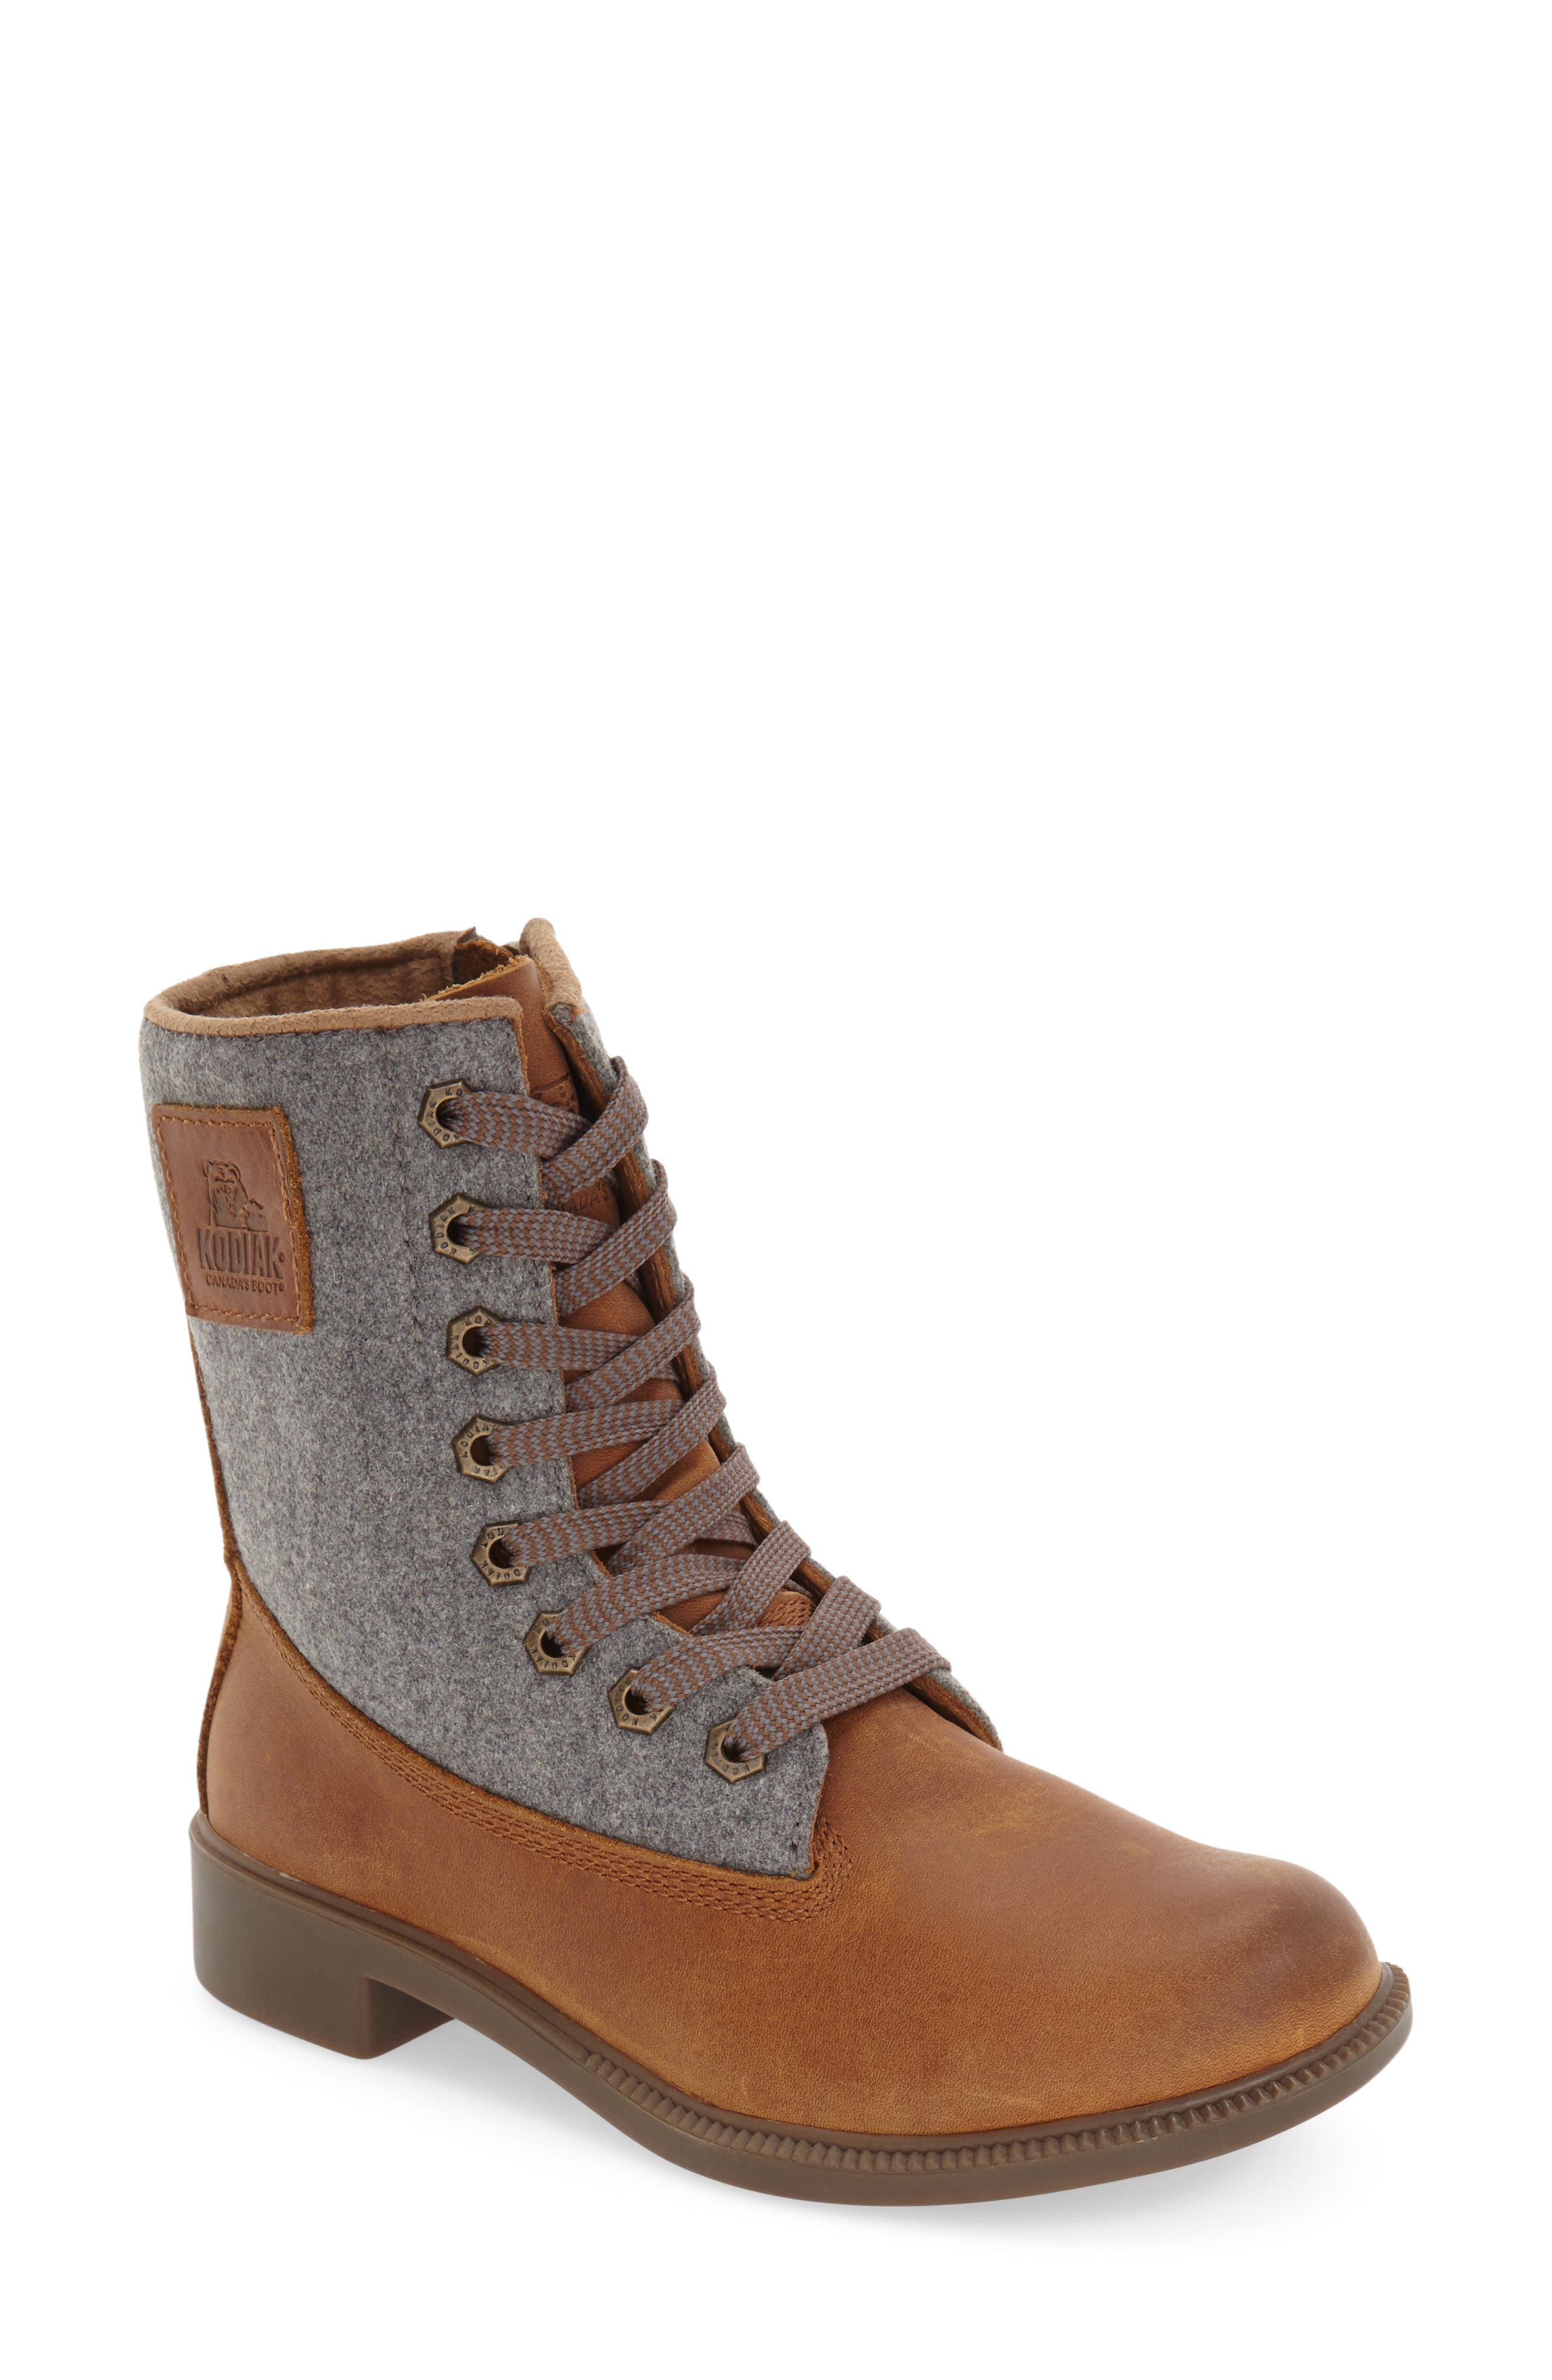 'Addison' Waterproof Insulated Zip Boot,                         Main,                         color, 240